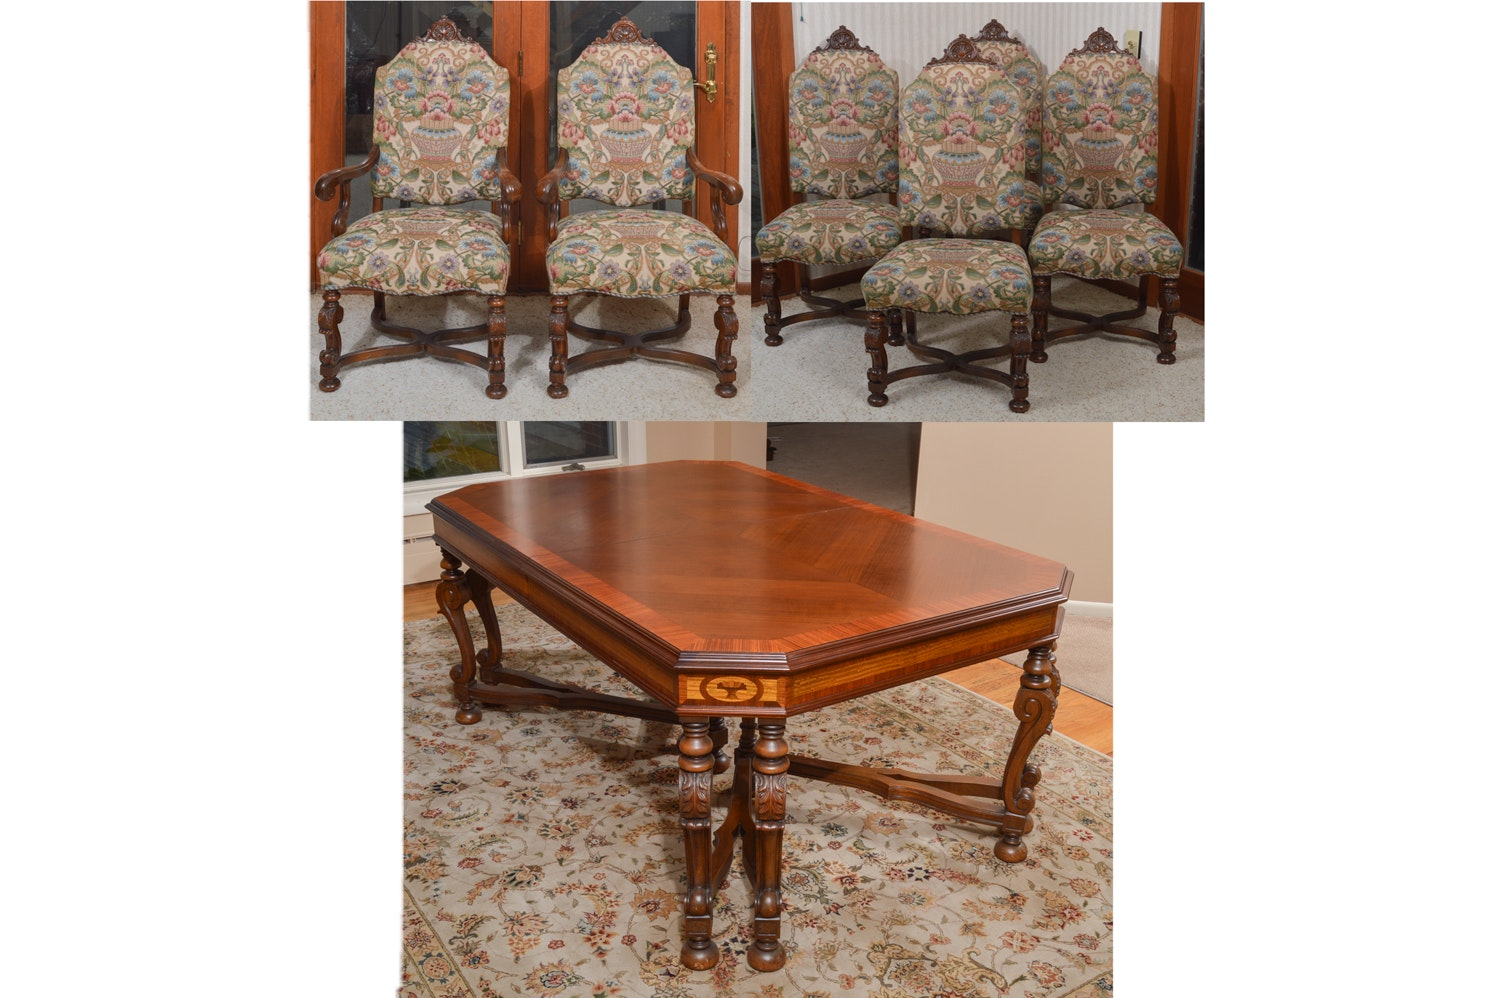 Vintage Federal Style Dining Room Table With Leaf Insert and Dining Chairs